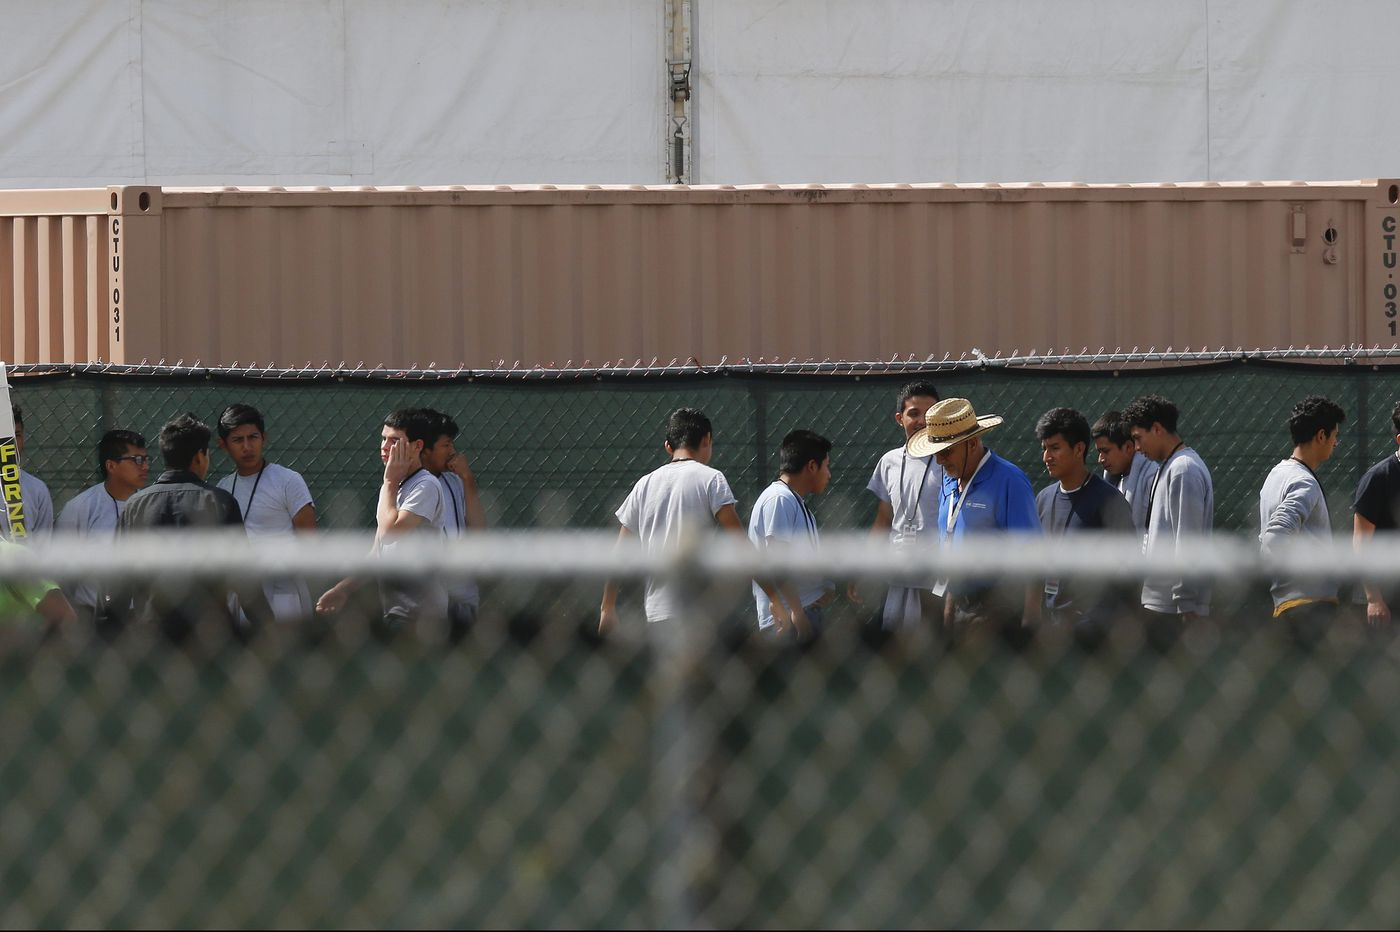 Mental health pros on family separation: Some damage can never be undone | Opinion